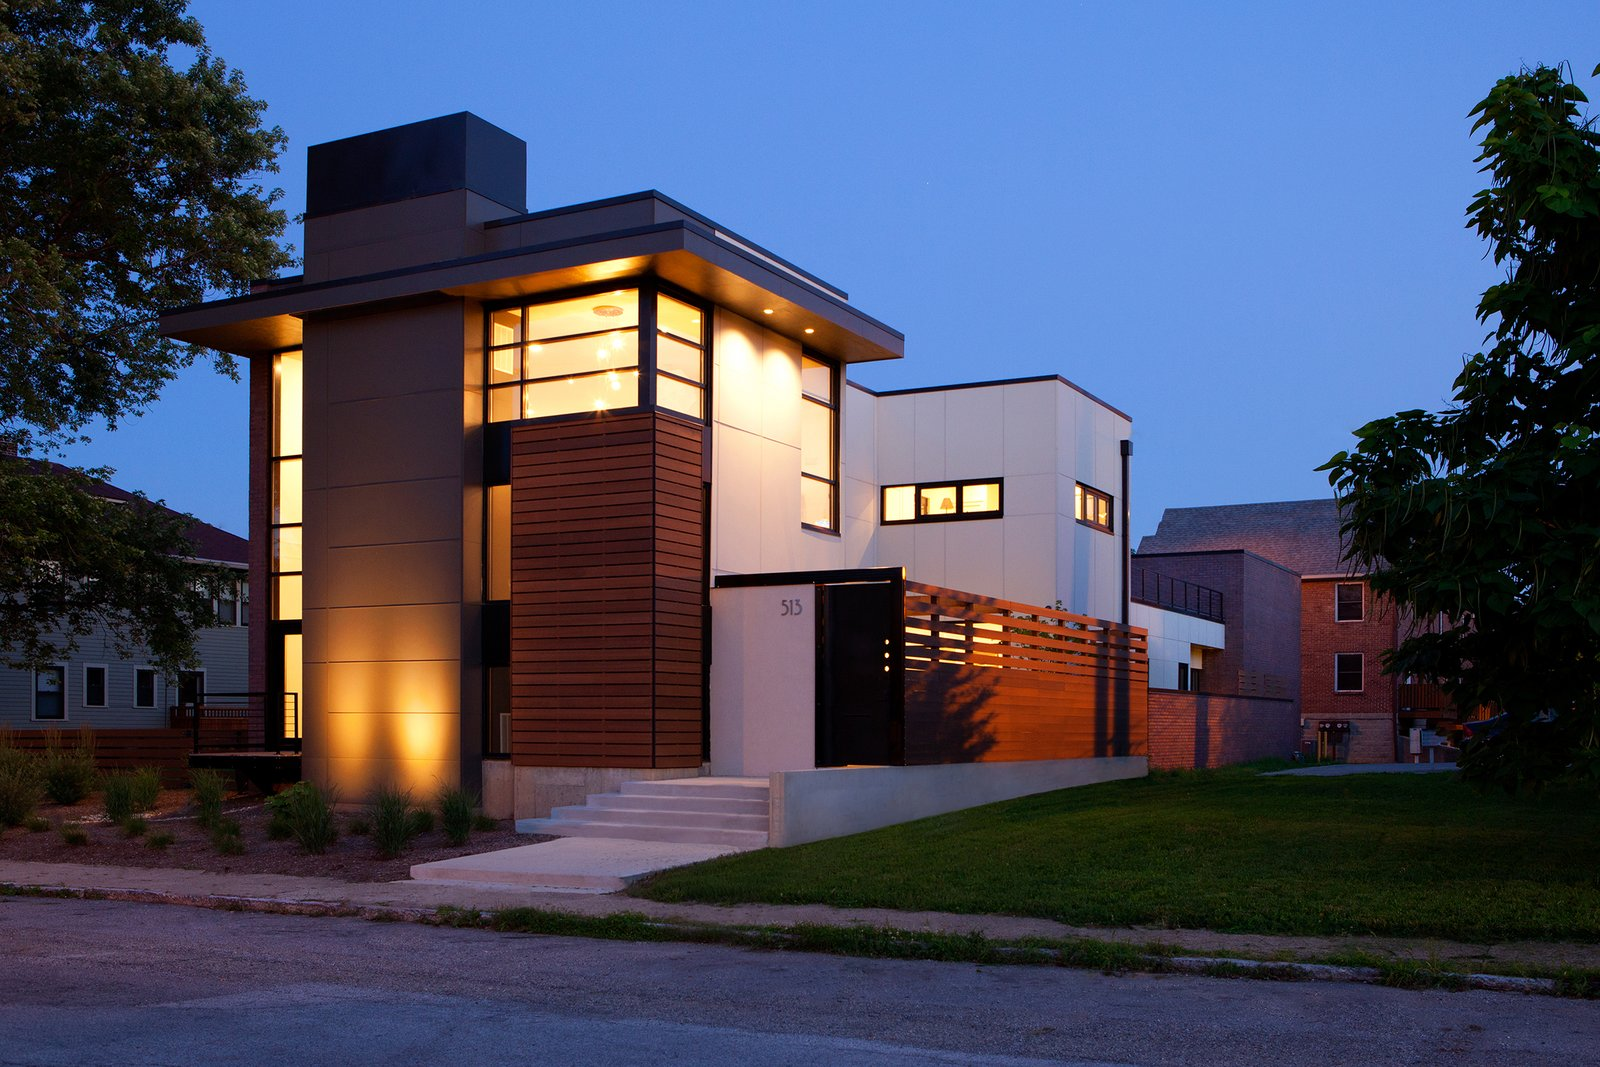 The design provides a layer of privacy for the homeowners, while the solid massing peels away to large expanses of glazing, framing intended view sheds both inward and outward. Along with its verticality, the home pulls key horizontal elements from the established neighborhood rhythm, specifically the eaves and elevated floor lines.  City Cottage by ONE 10 STUDIO Architects